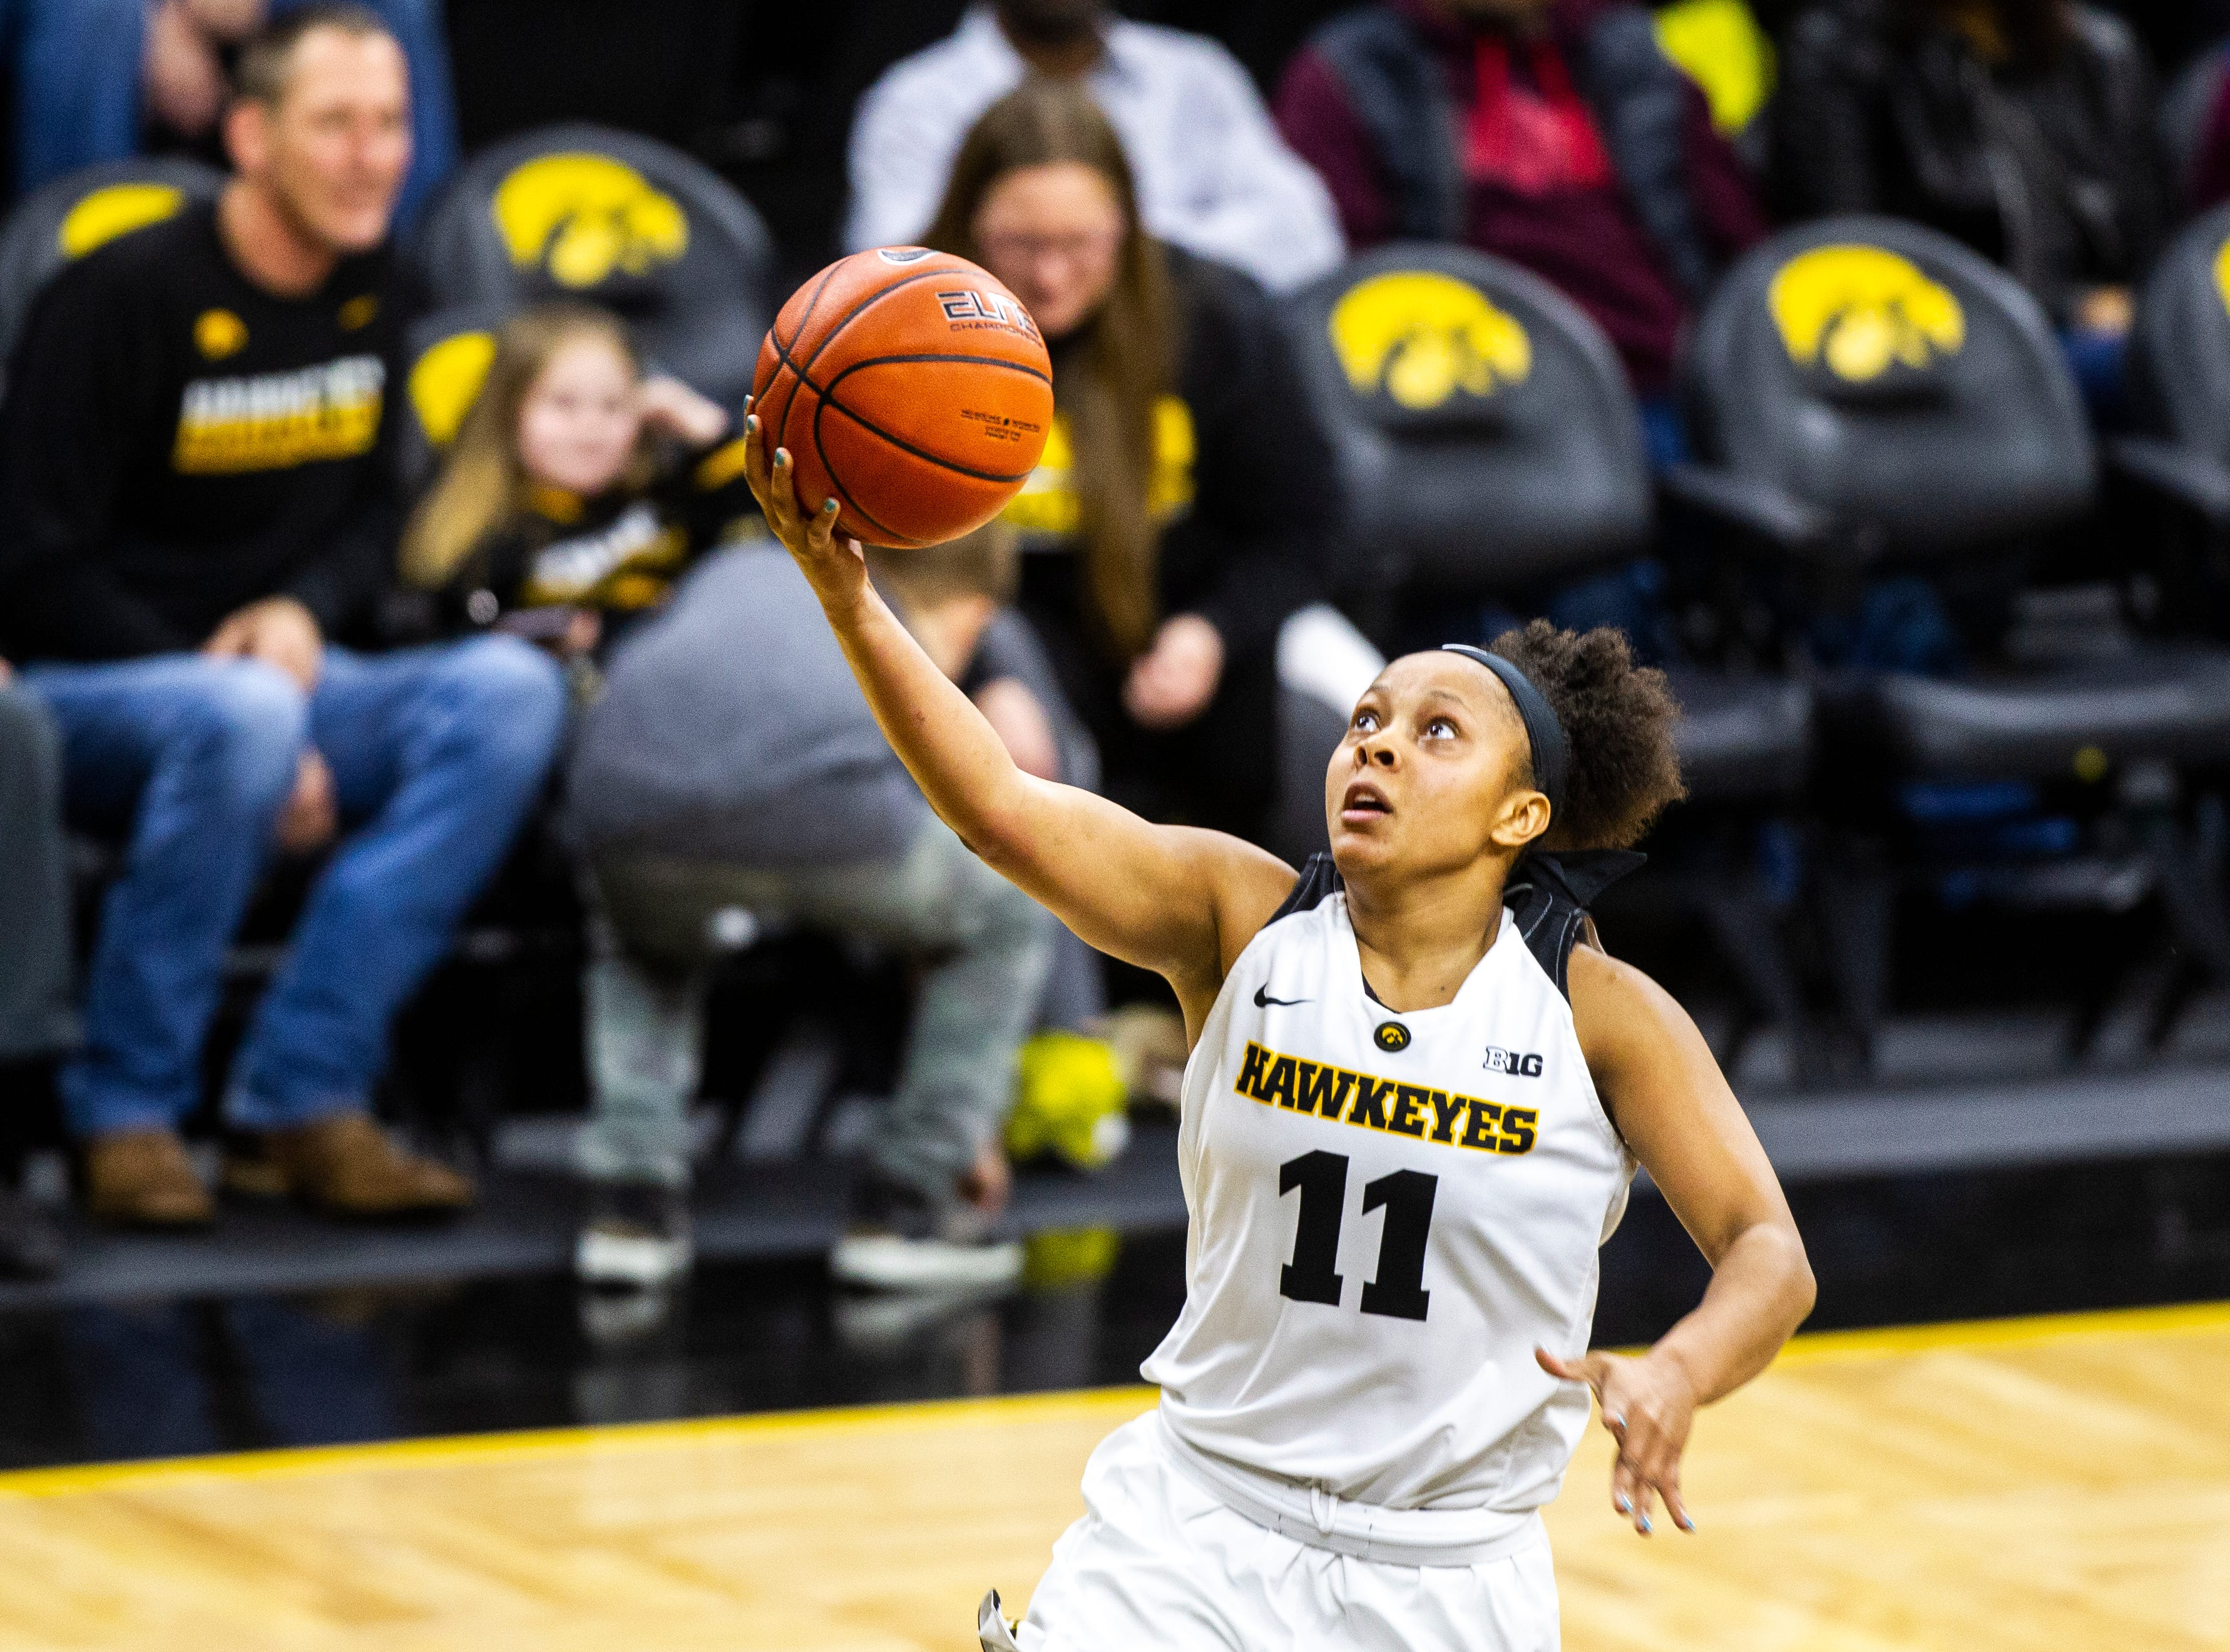 Iowa guard Tania Davis (11) makes a basket during a NCAA women's basketball game on Saturday, Dec. 8, 2018, at Carver-Hawkeye Arena in Iowa City.